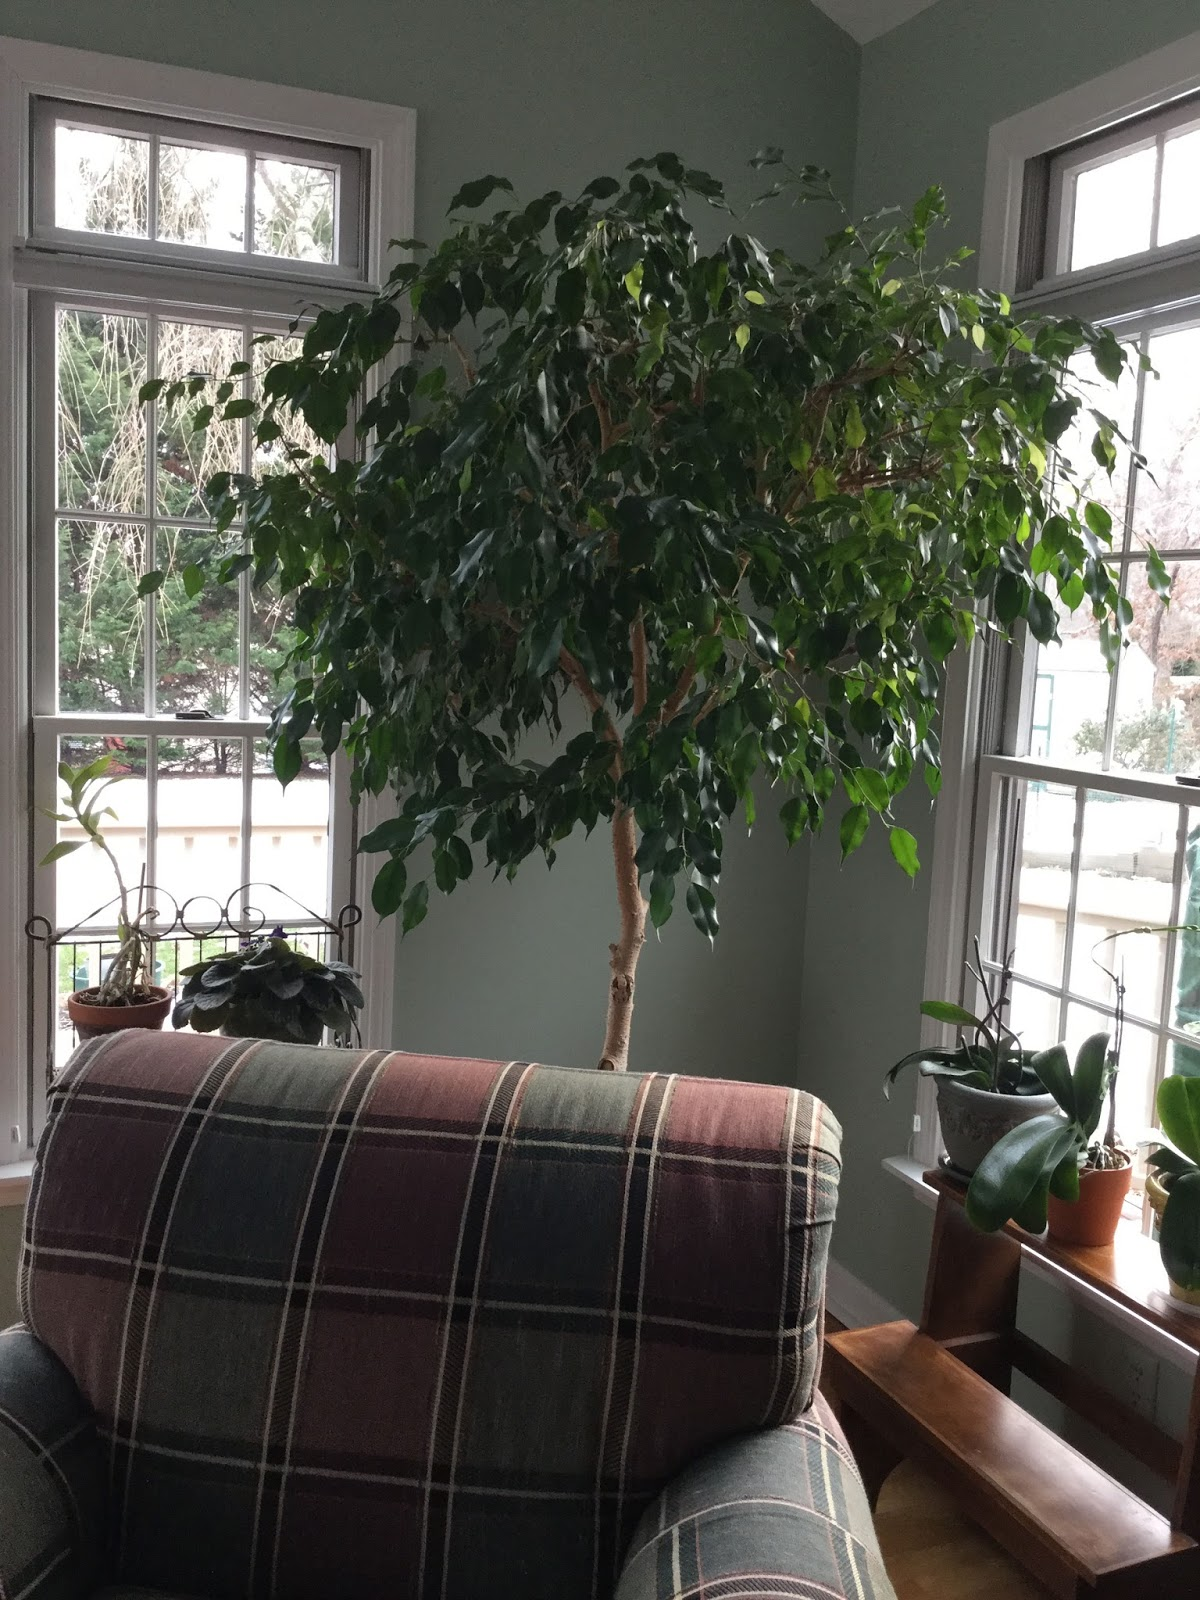 a happy ficus tree - Ficus Trees